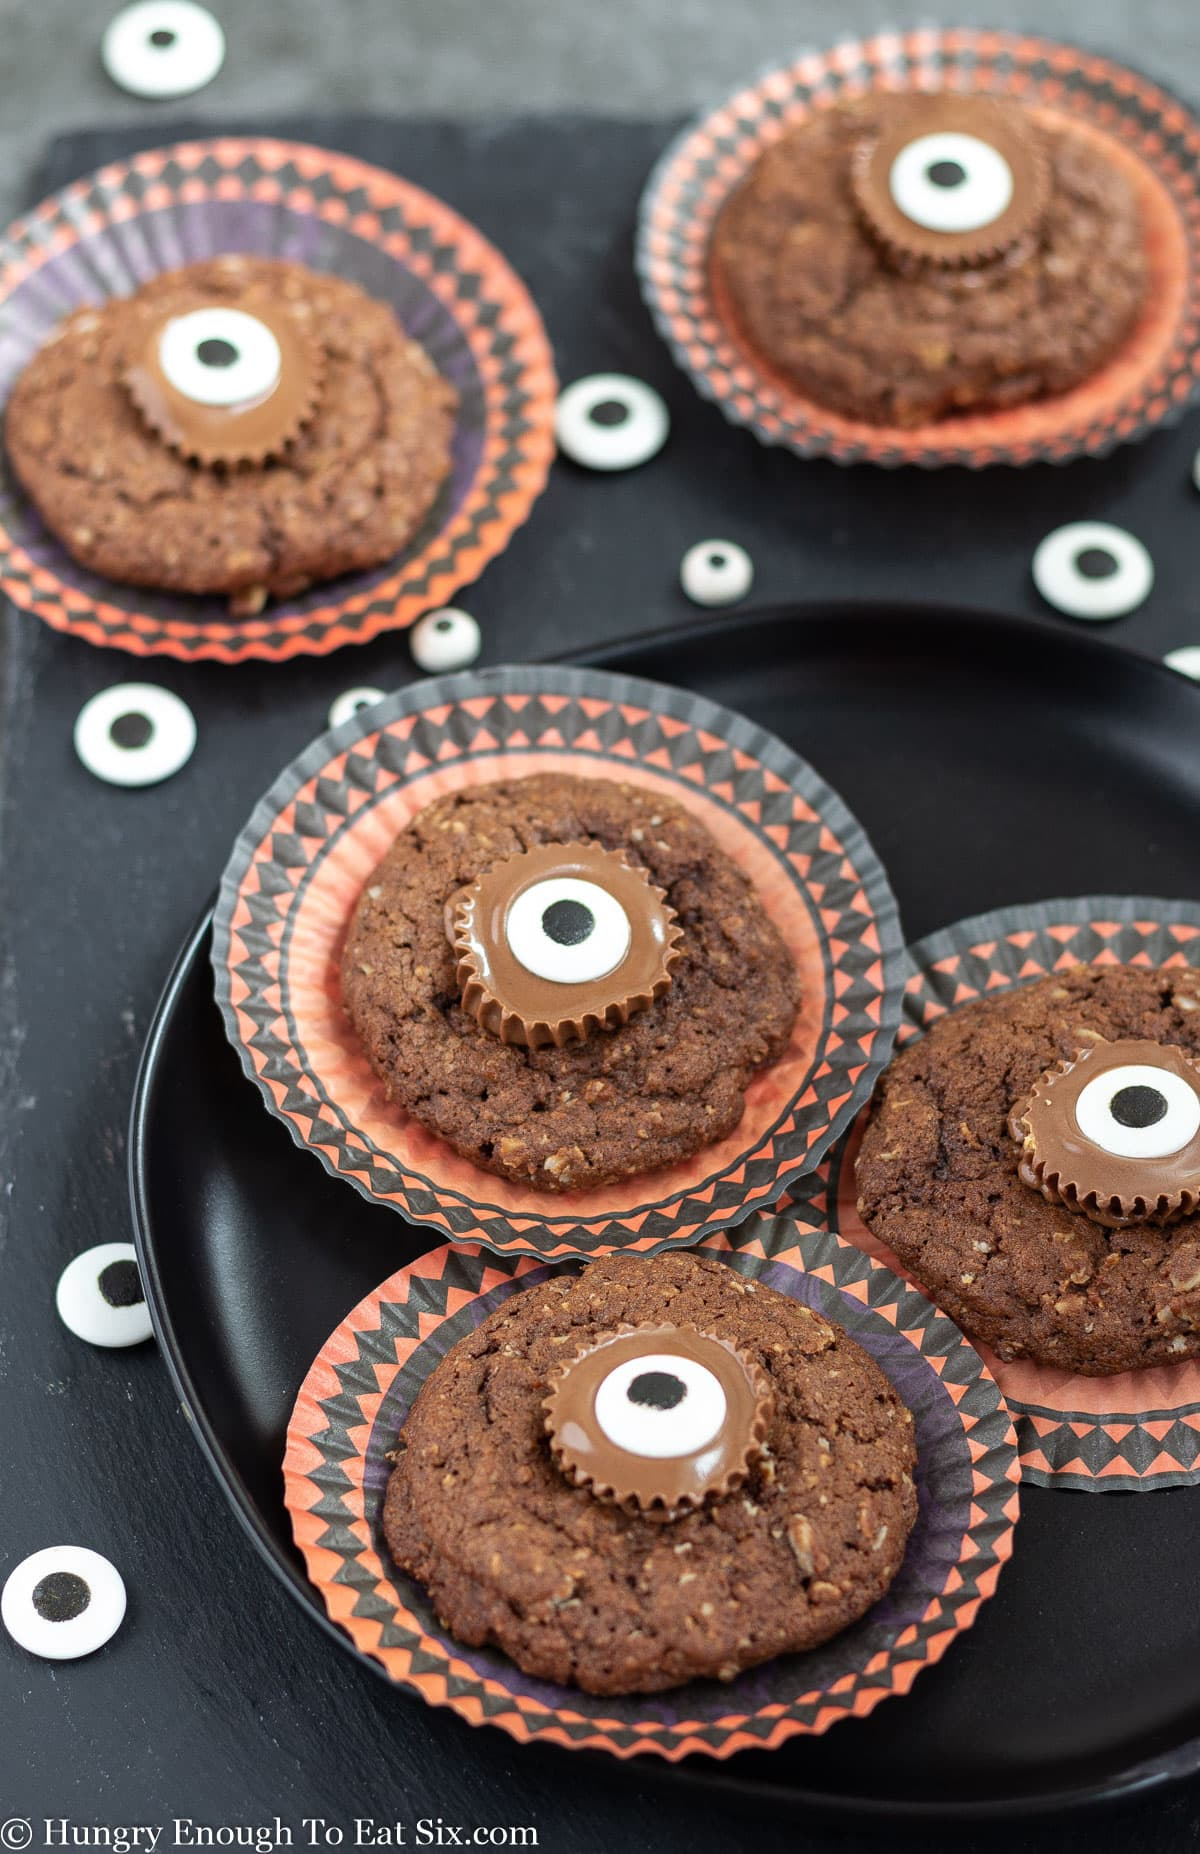 Chocolate cookies with peanut butter cup centers and candy eyes